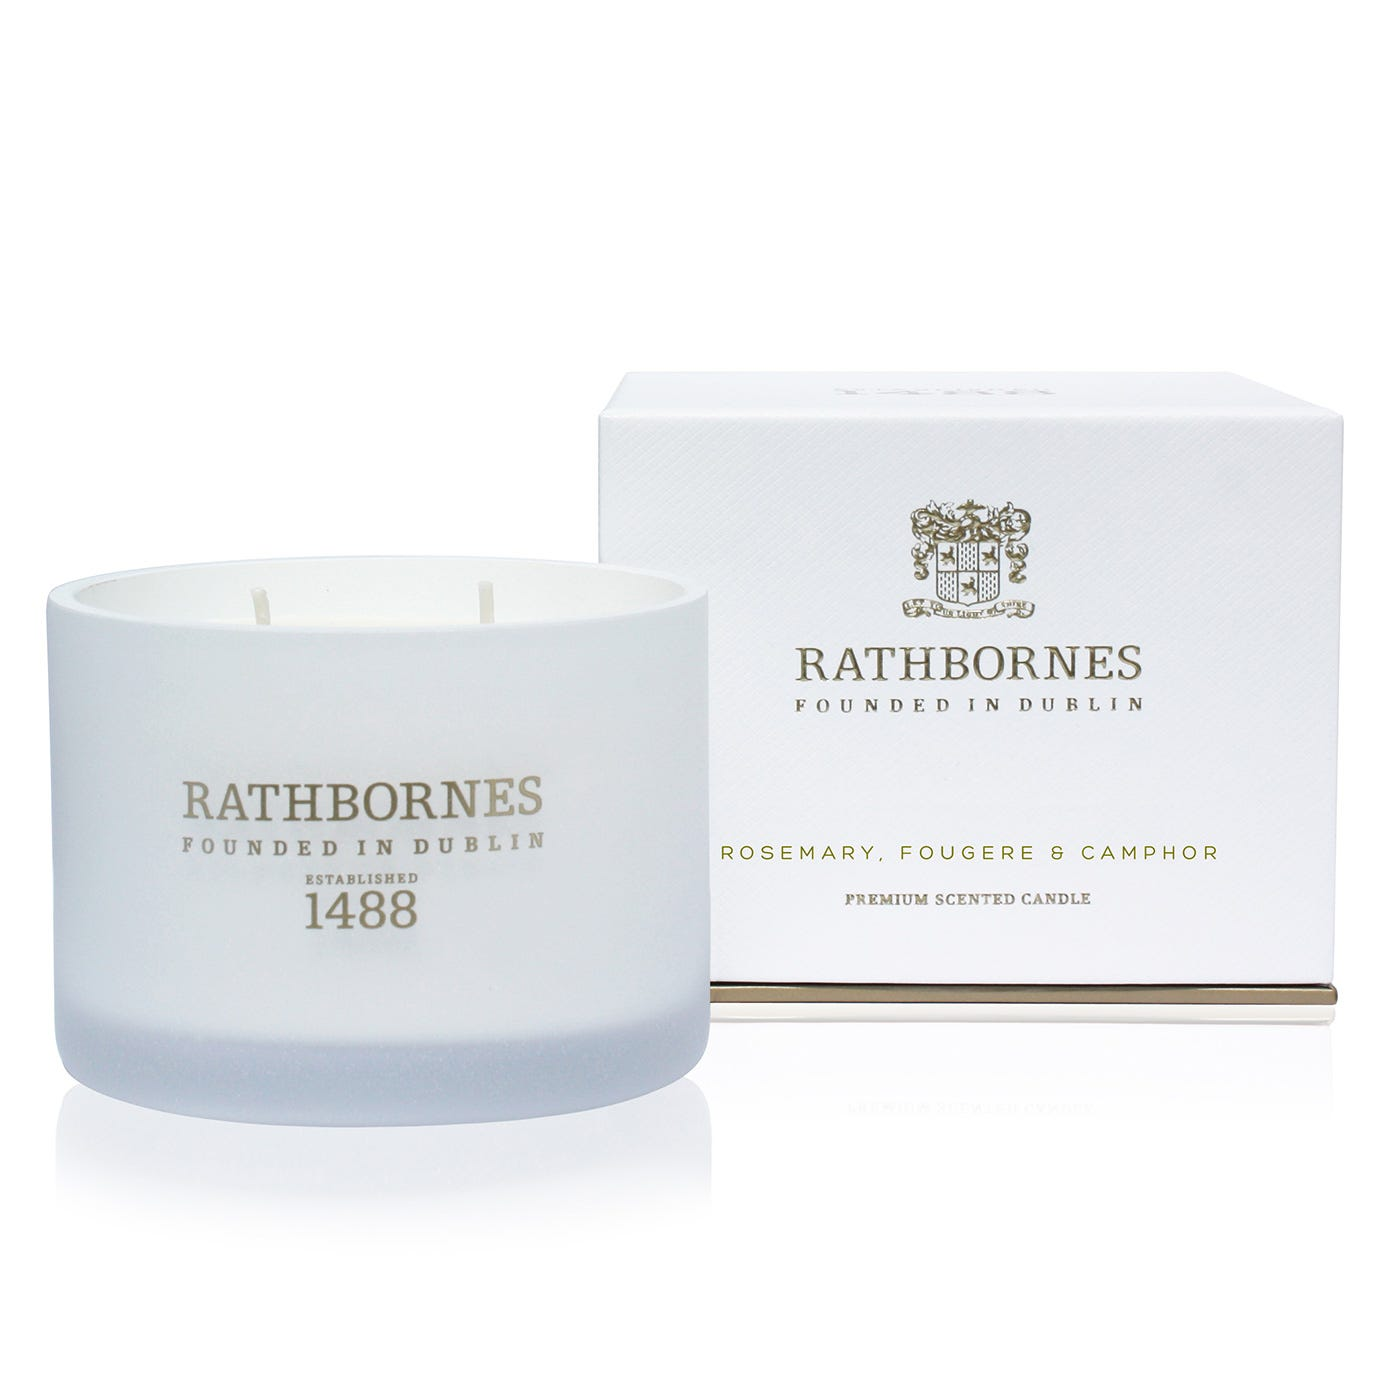 Rosemary Fougere & Camphor Candle